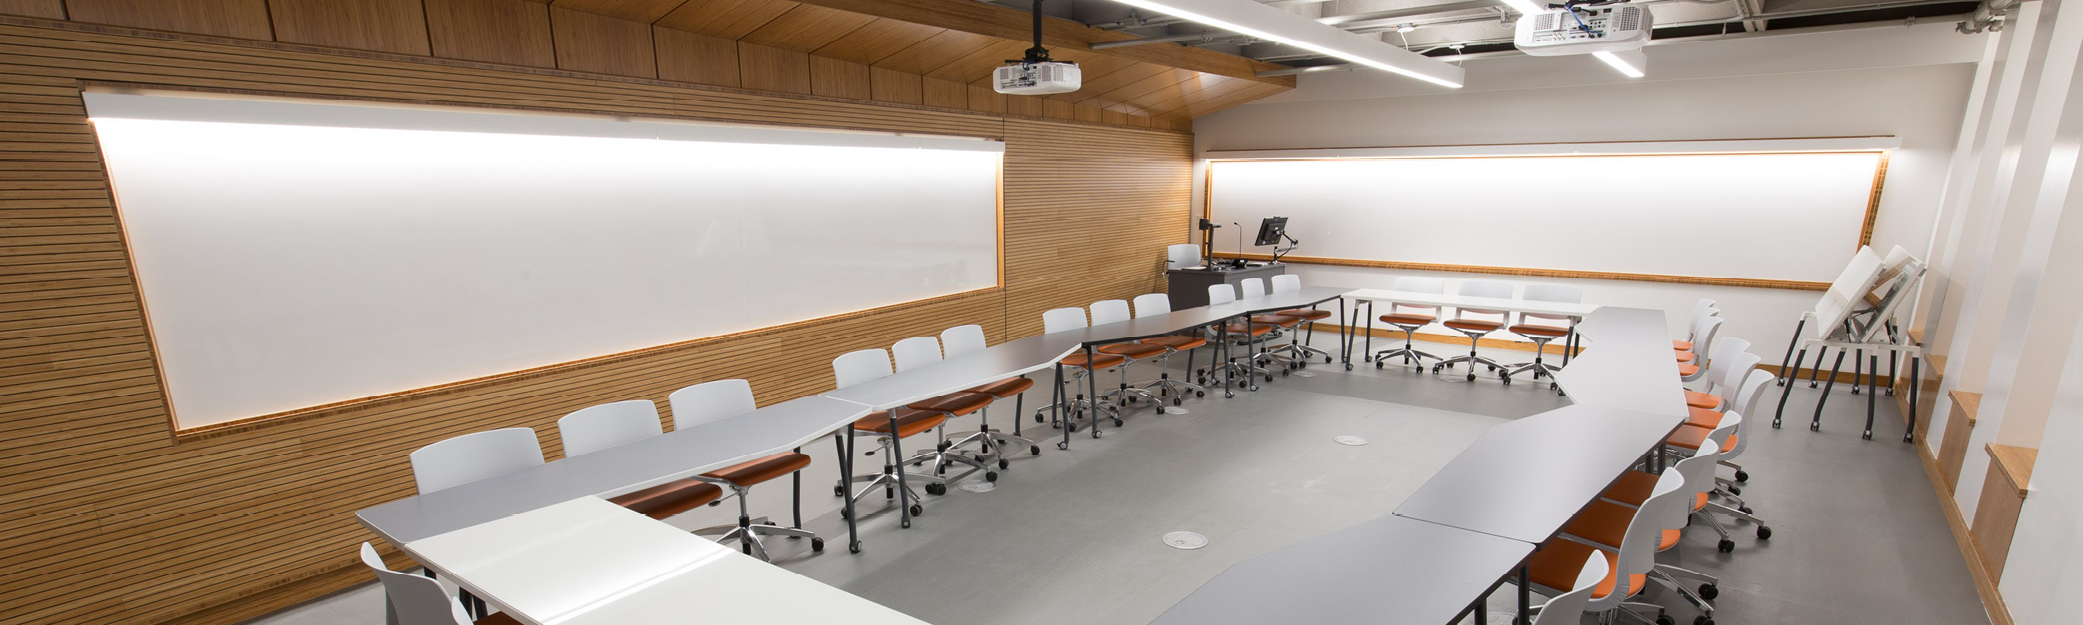 New Chancellor Day Hall classroom